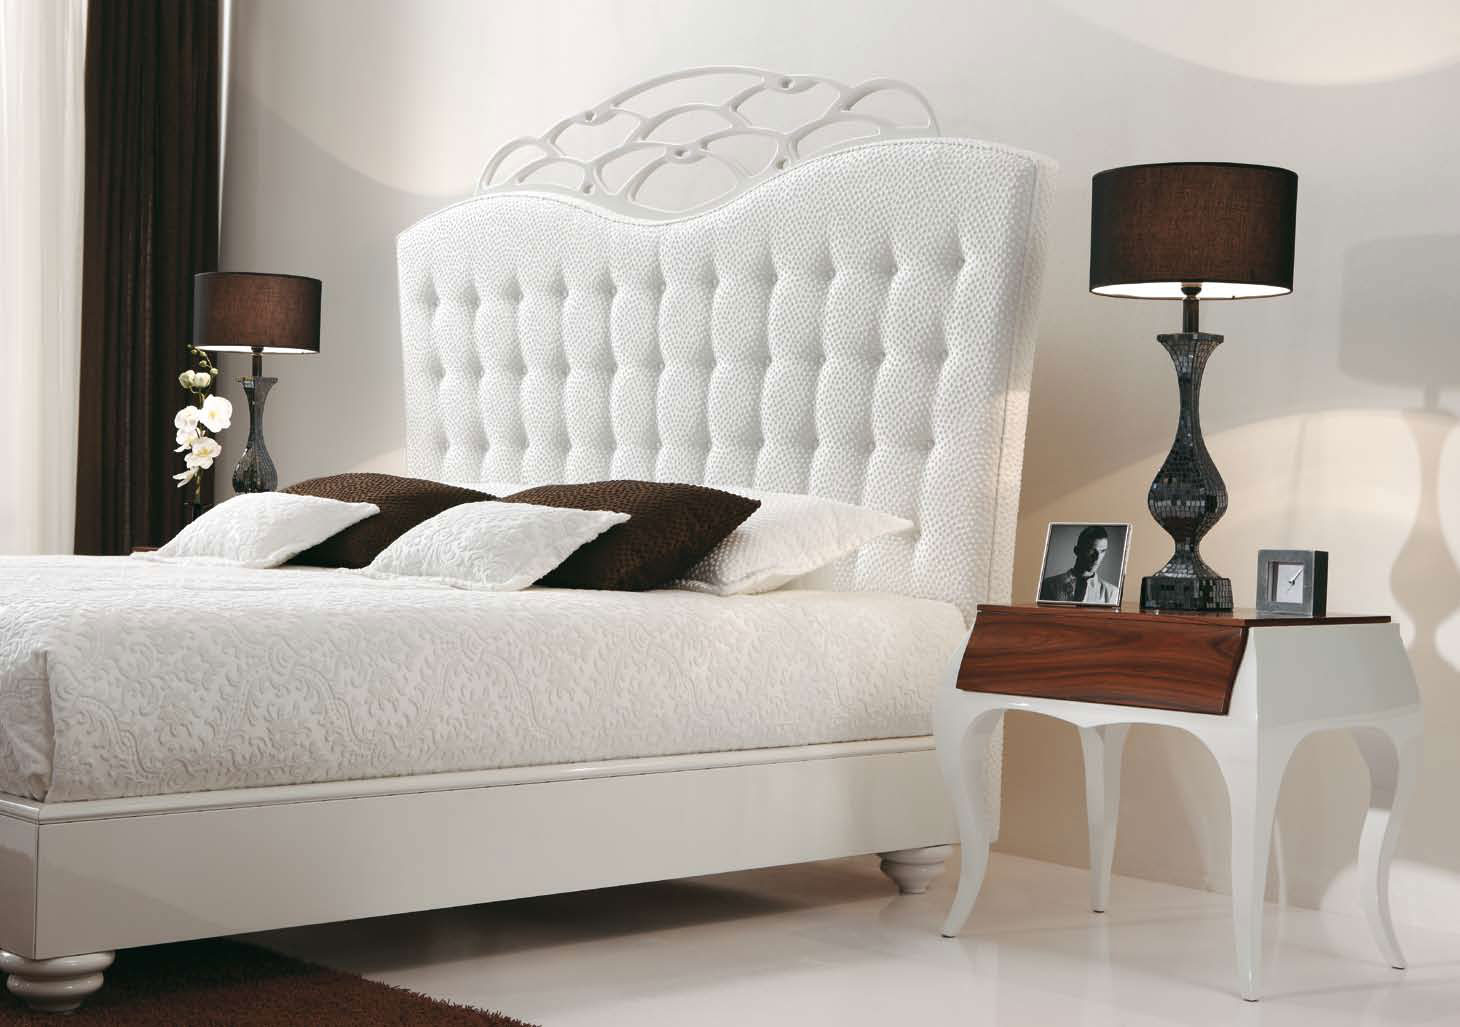 White bedroom furniture create personal space more for Small white bedroom